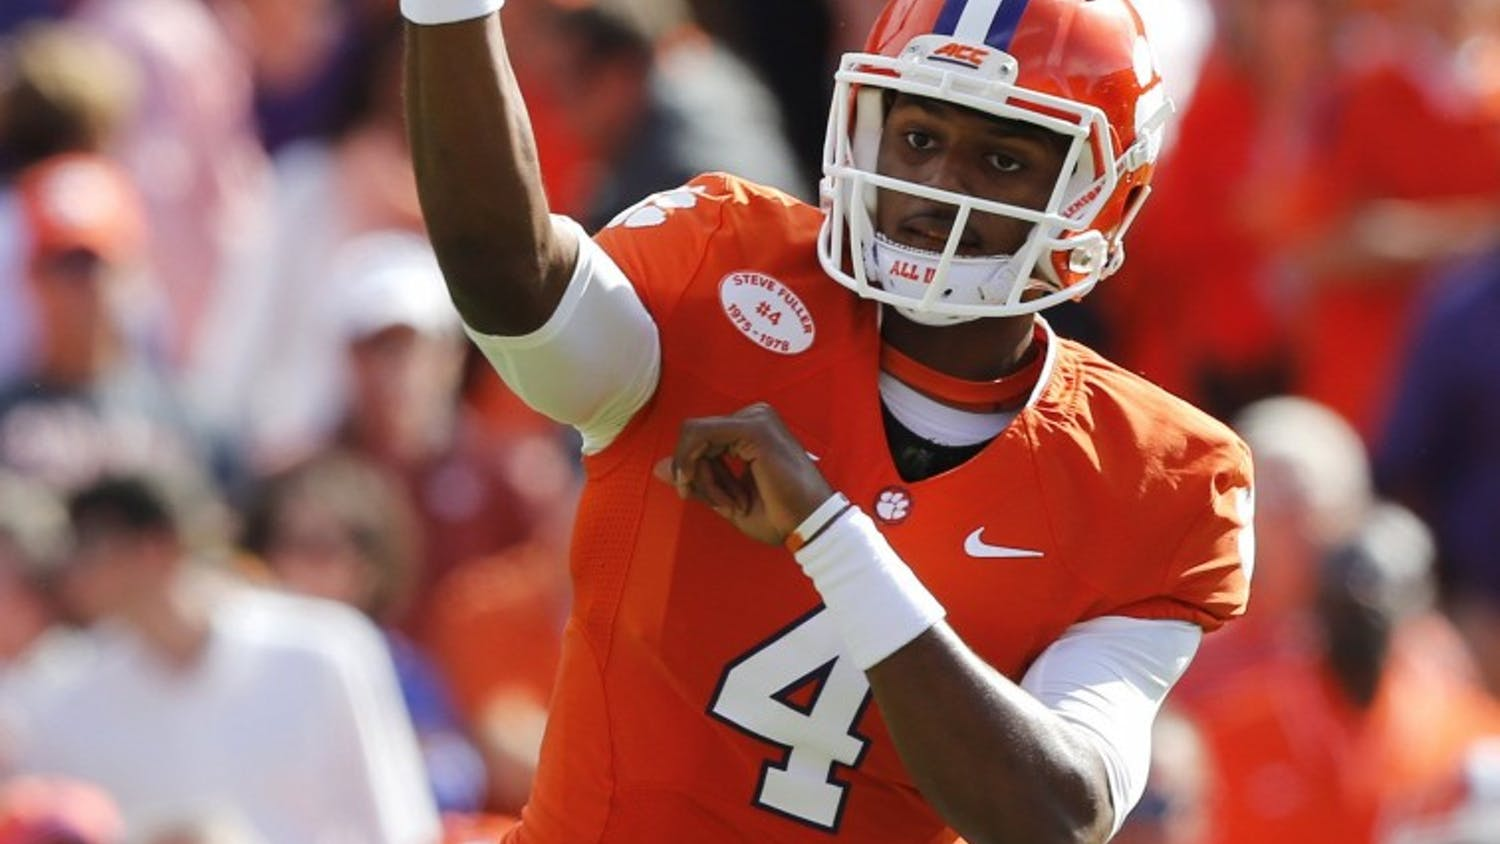 Clemson quarterback Deshaun Watson (4) passes during the first half against North Carolina State at Memorial Stadium in Clemson, S.C., Saturday, Oct. 4, 2014. (Ethan Hyman/Raleigh News & Observer/MCT)